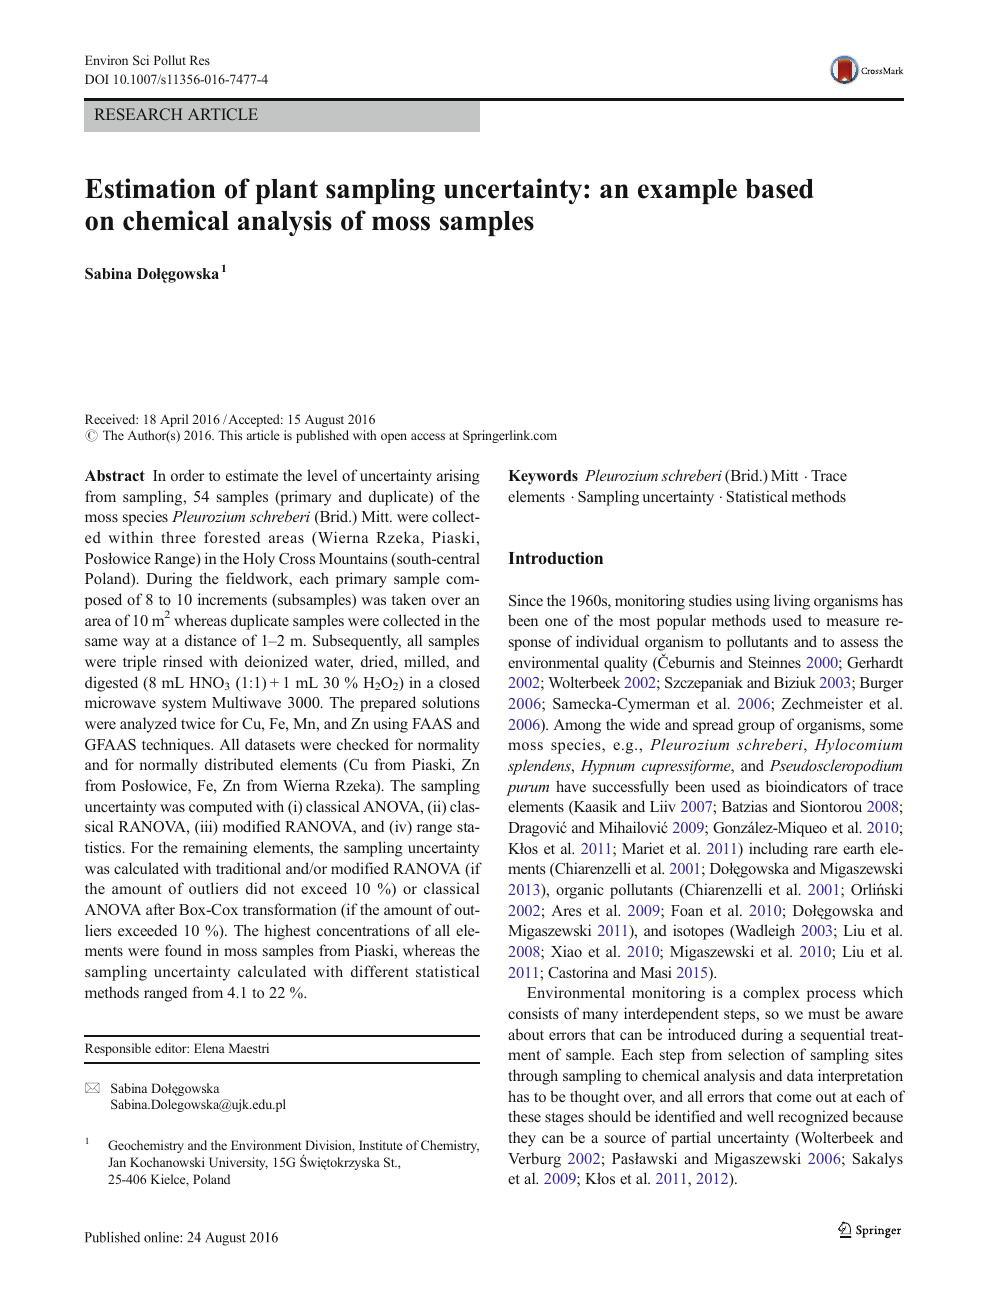 Estimation of plant sampling uncertainty: an example based